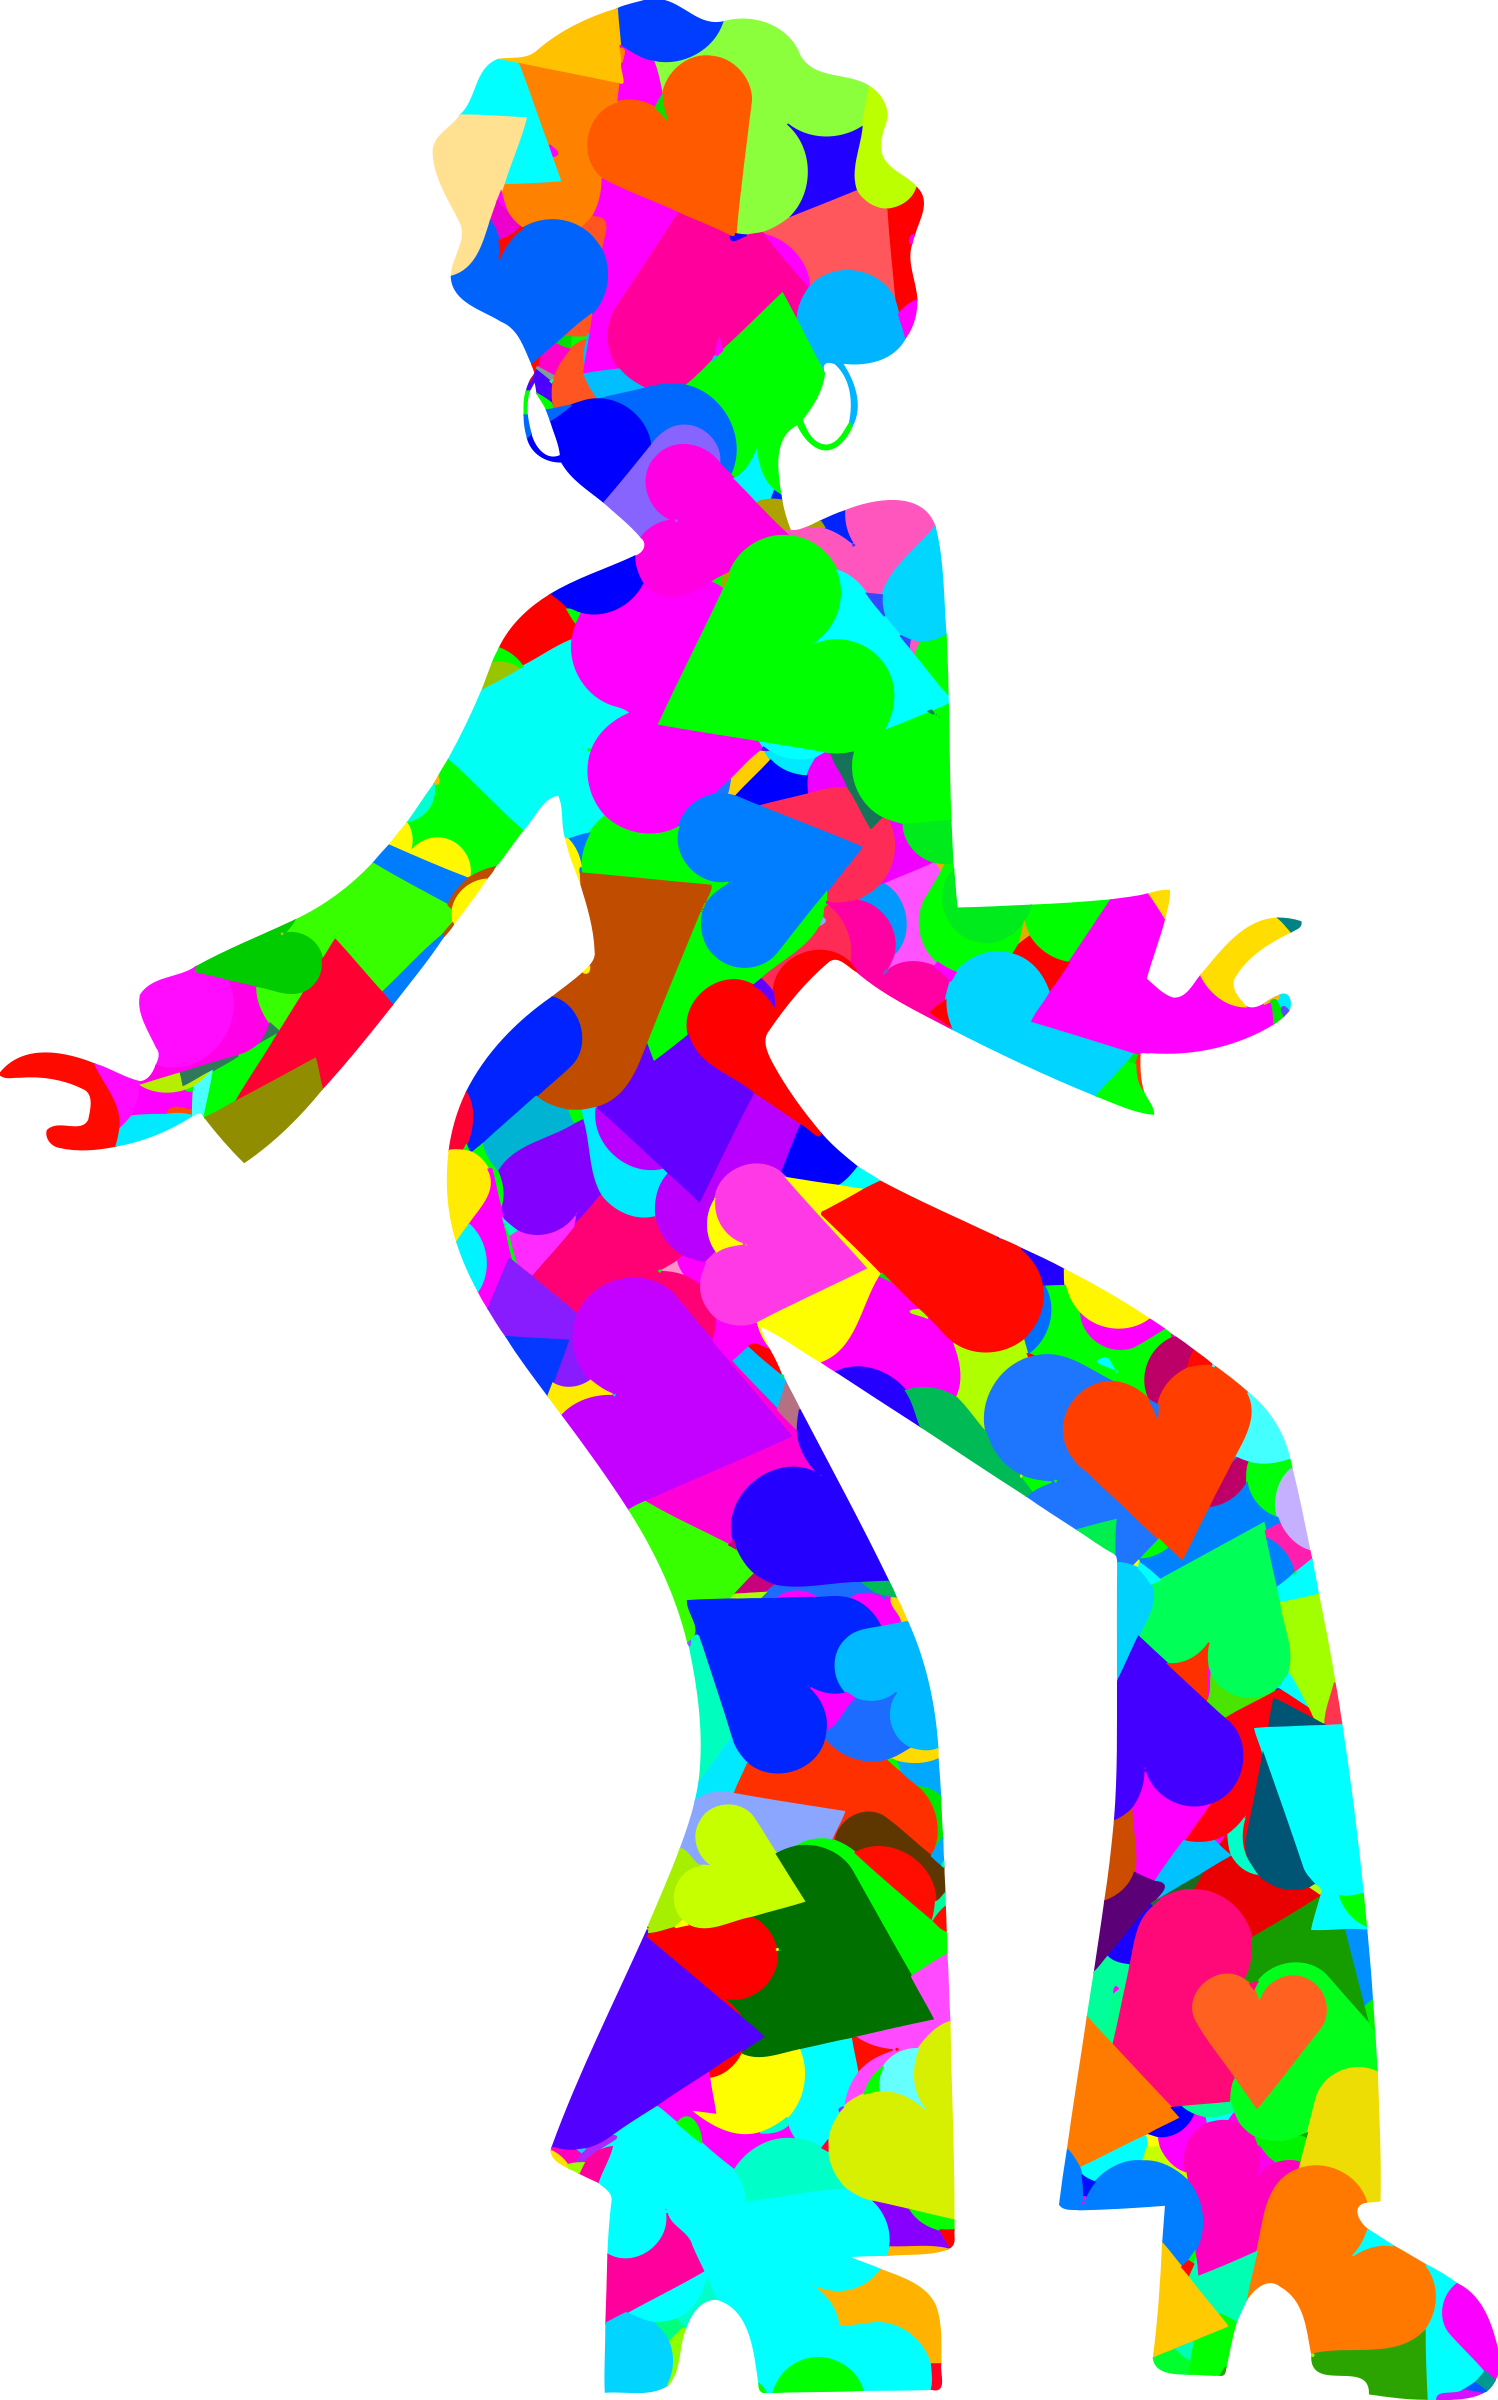 Colourful disco dancer 4 by Firkin